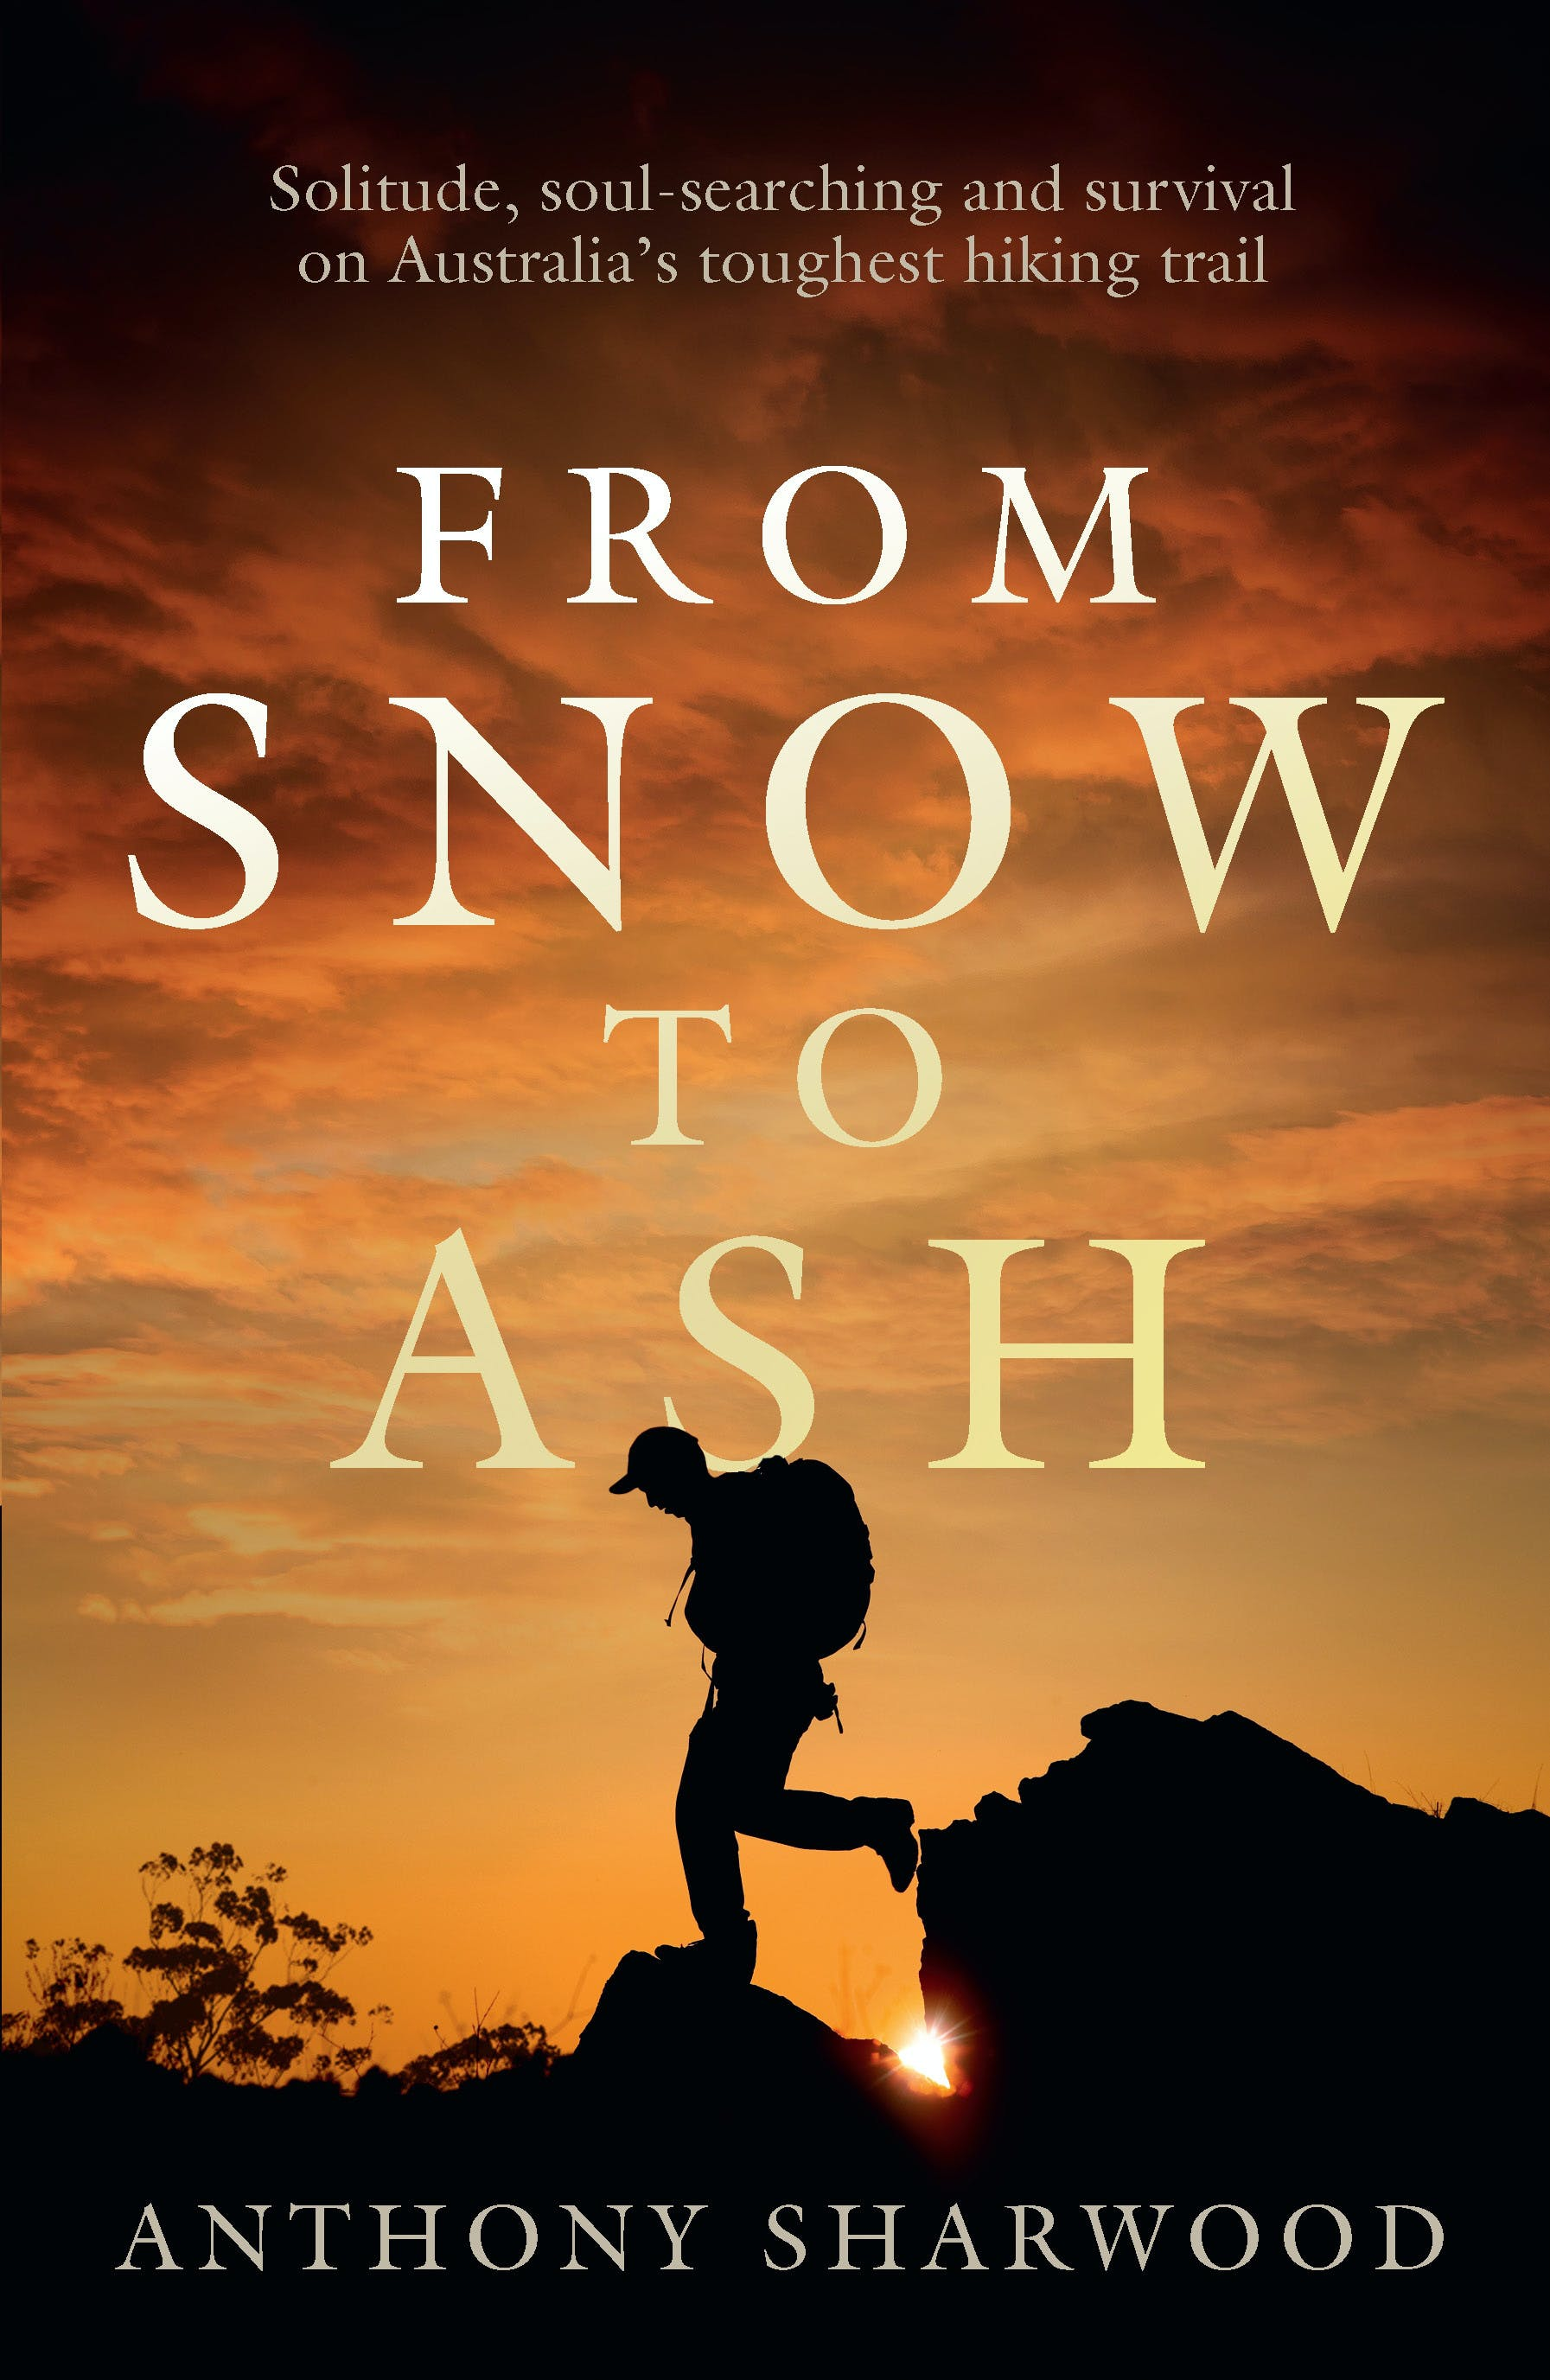 Cover of book - From Snow to Ash - published by Hachette